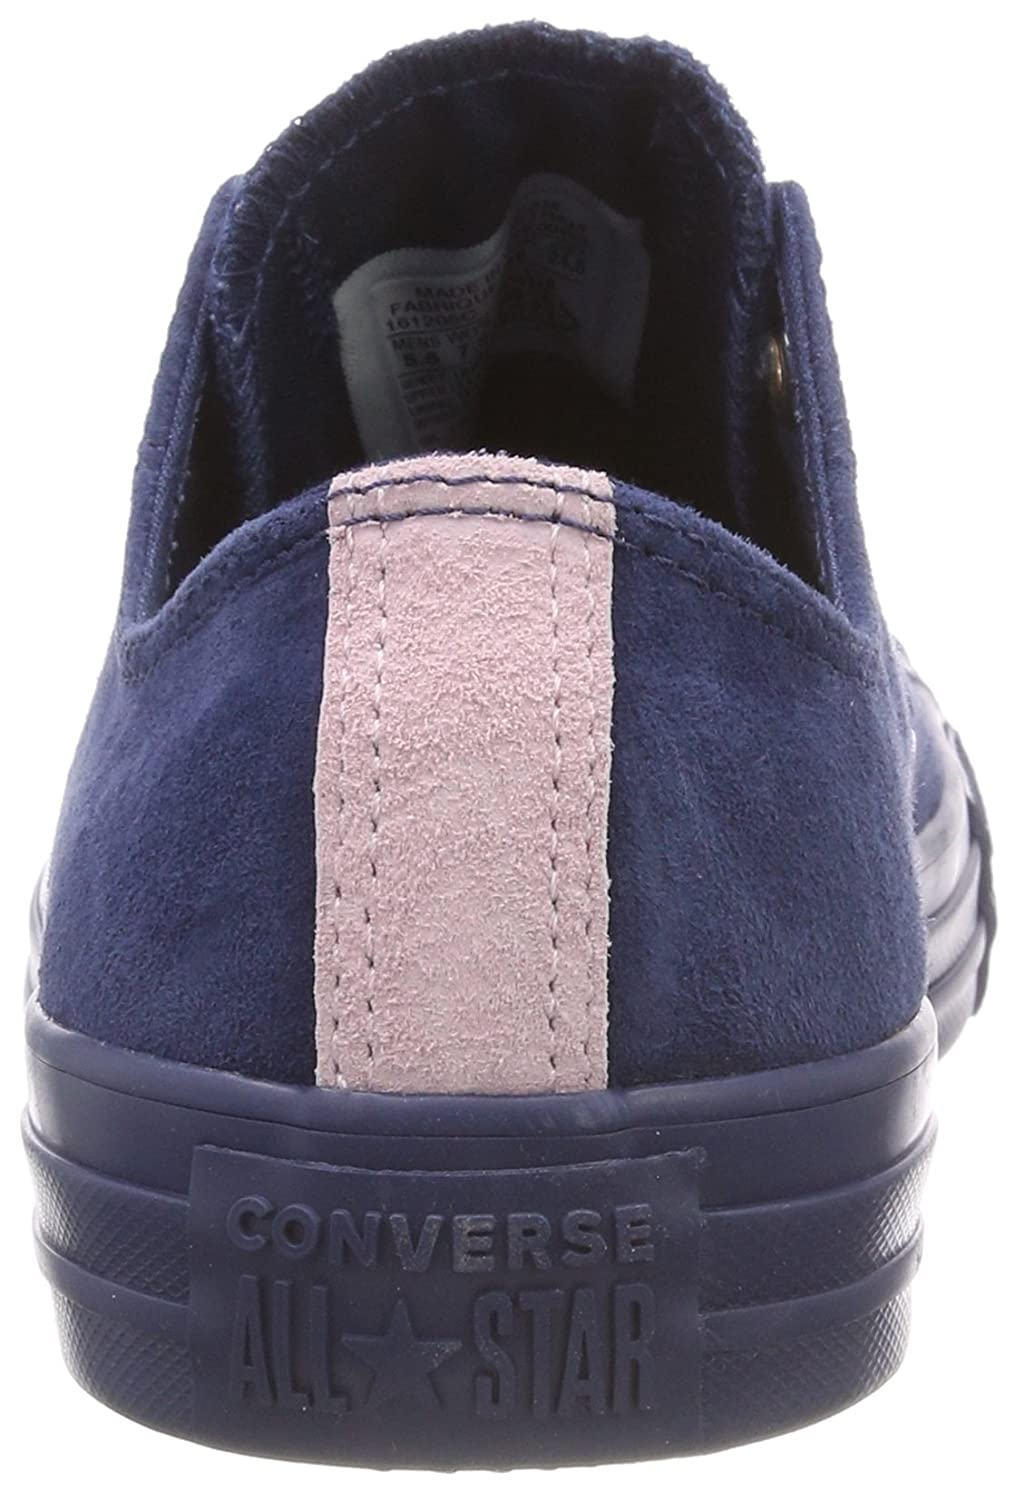 Amazon.com  Converse Unisex Adults  CTAS Ox Navy Cherry Blossom Trainers   Shoes 9047863d2